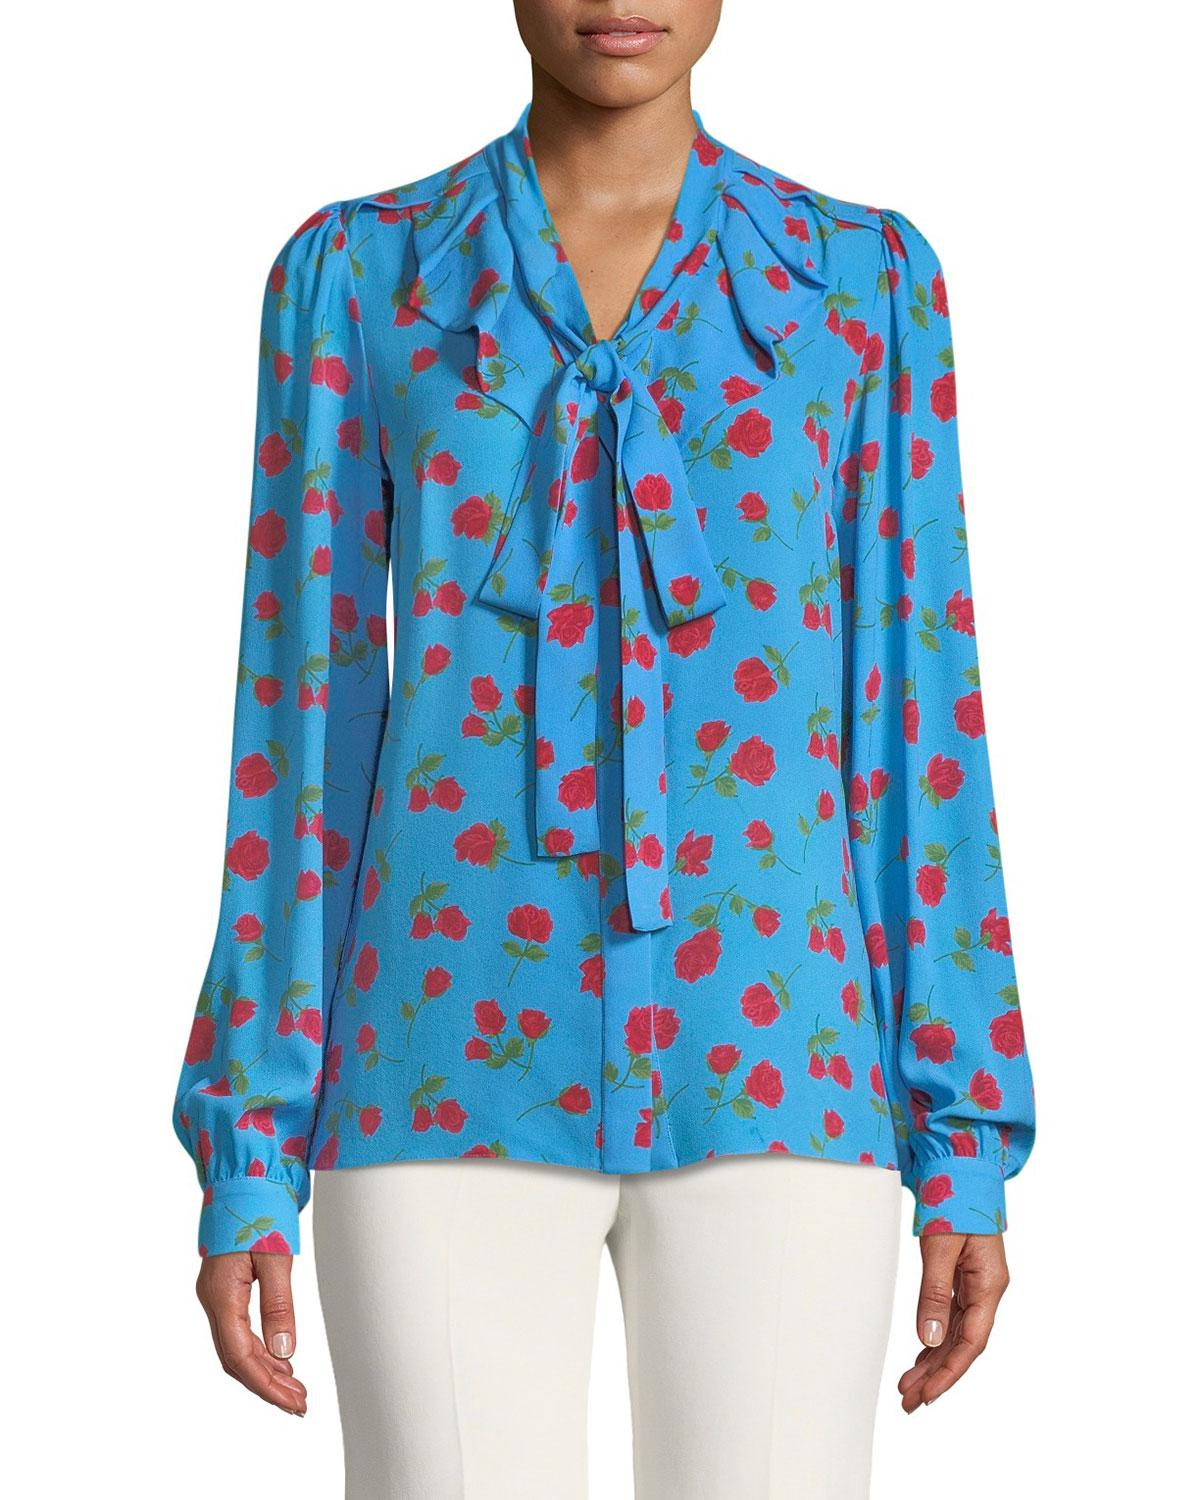 ea037ab2d7f51 Lyst - Michael Kors Button-down Tie-neck Scattered Rose-print Silk ...